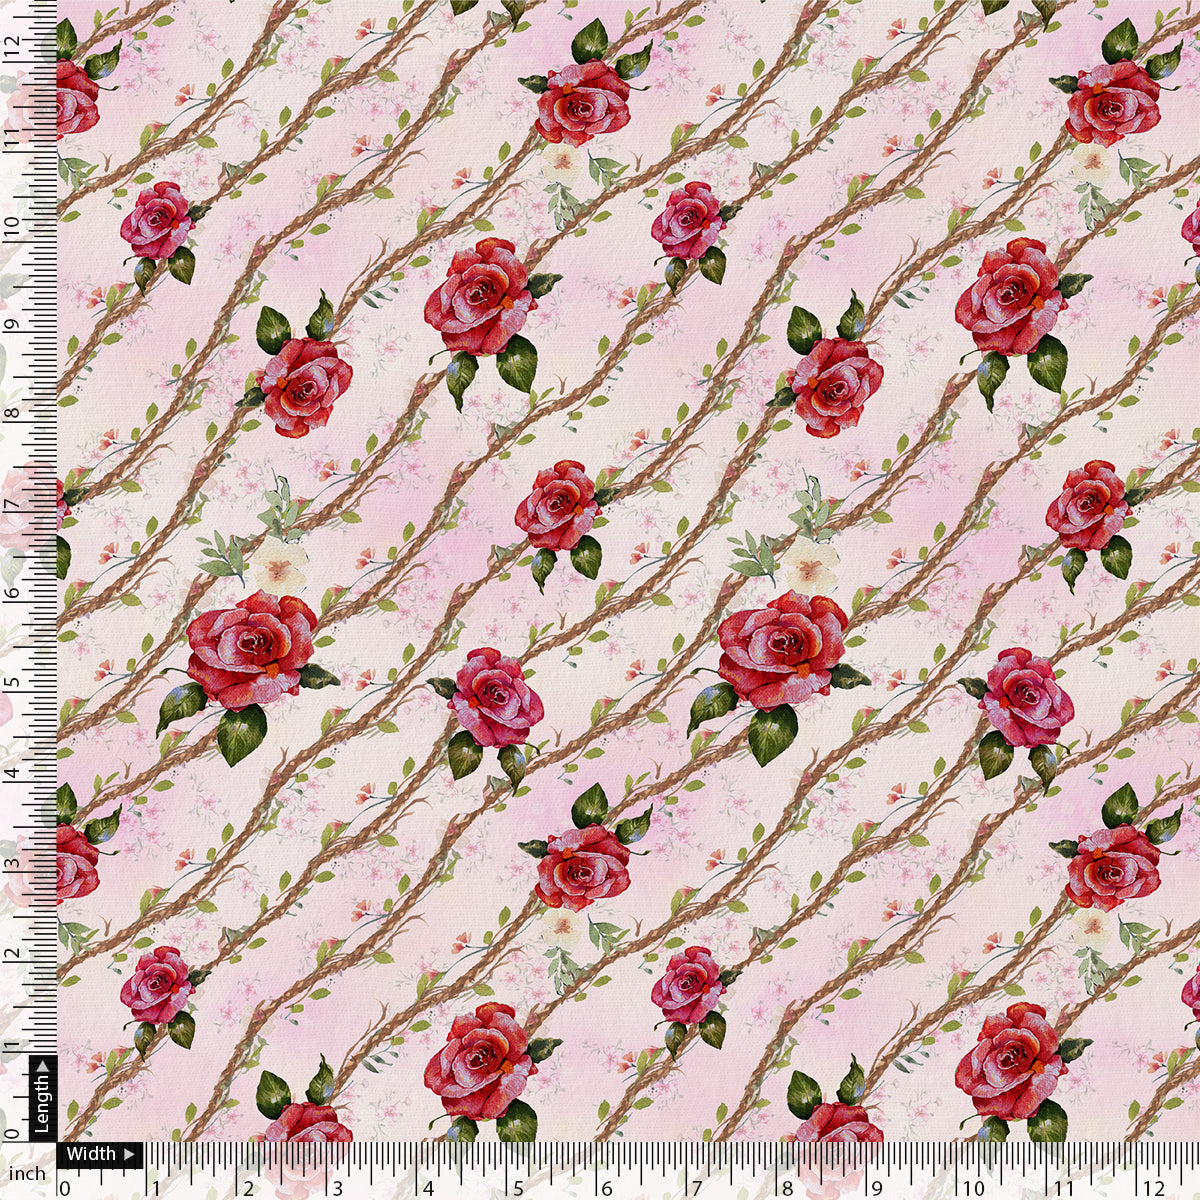 Autumnal Red Roses With Leaves Digital Printed Fabric